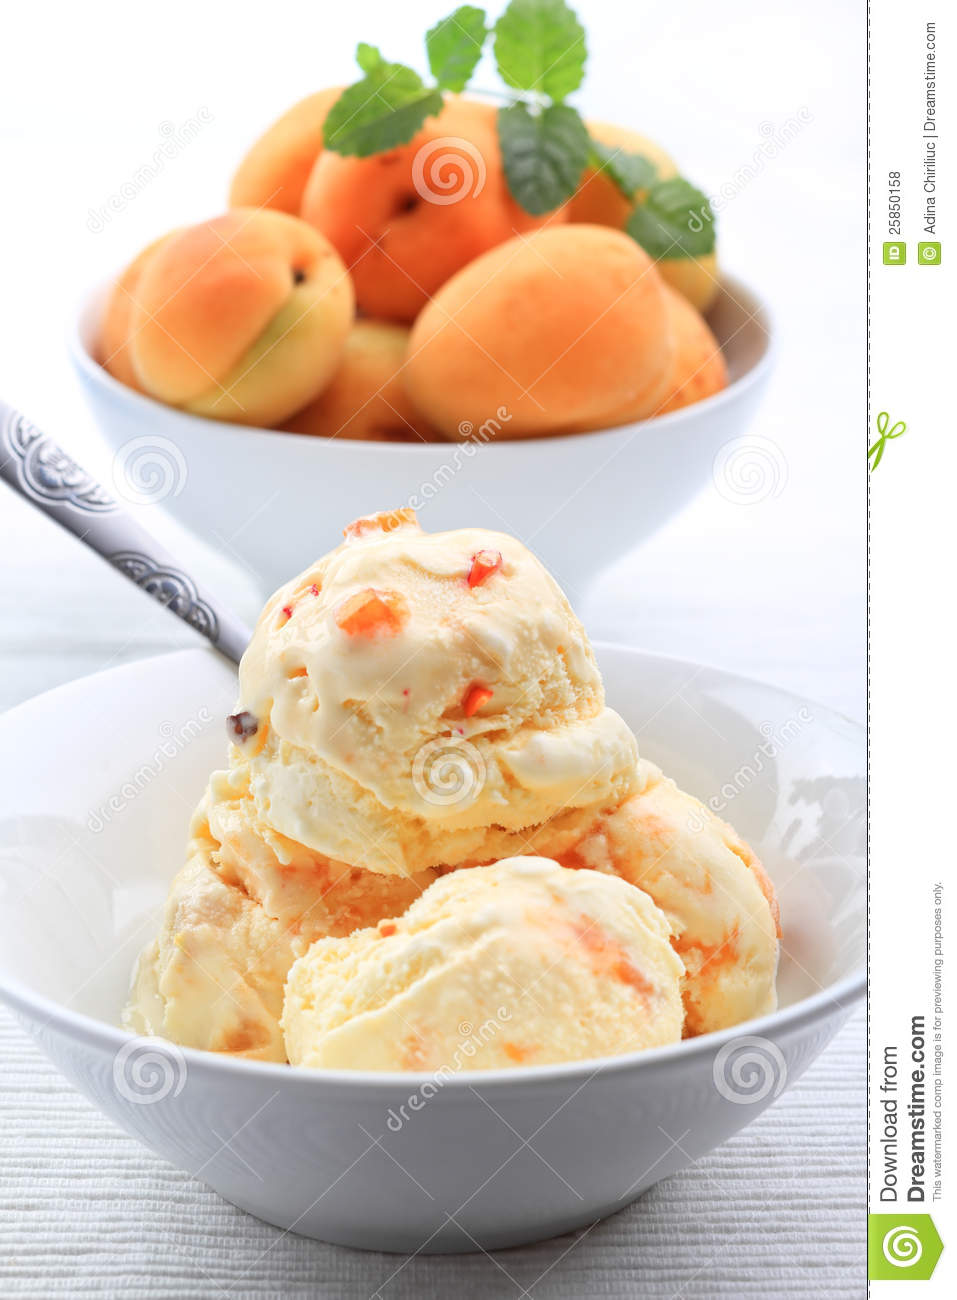 Apricot Ice Cream Royalty Free Stock Photos - Image: 25850158